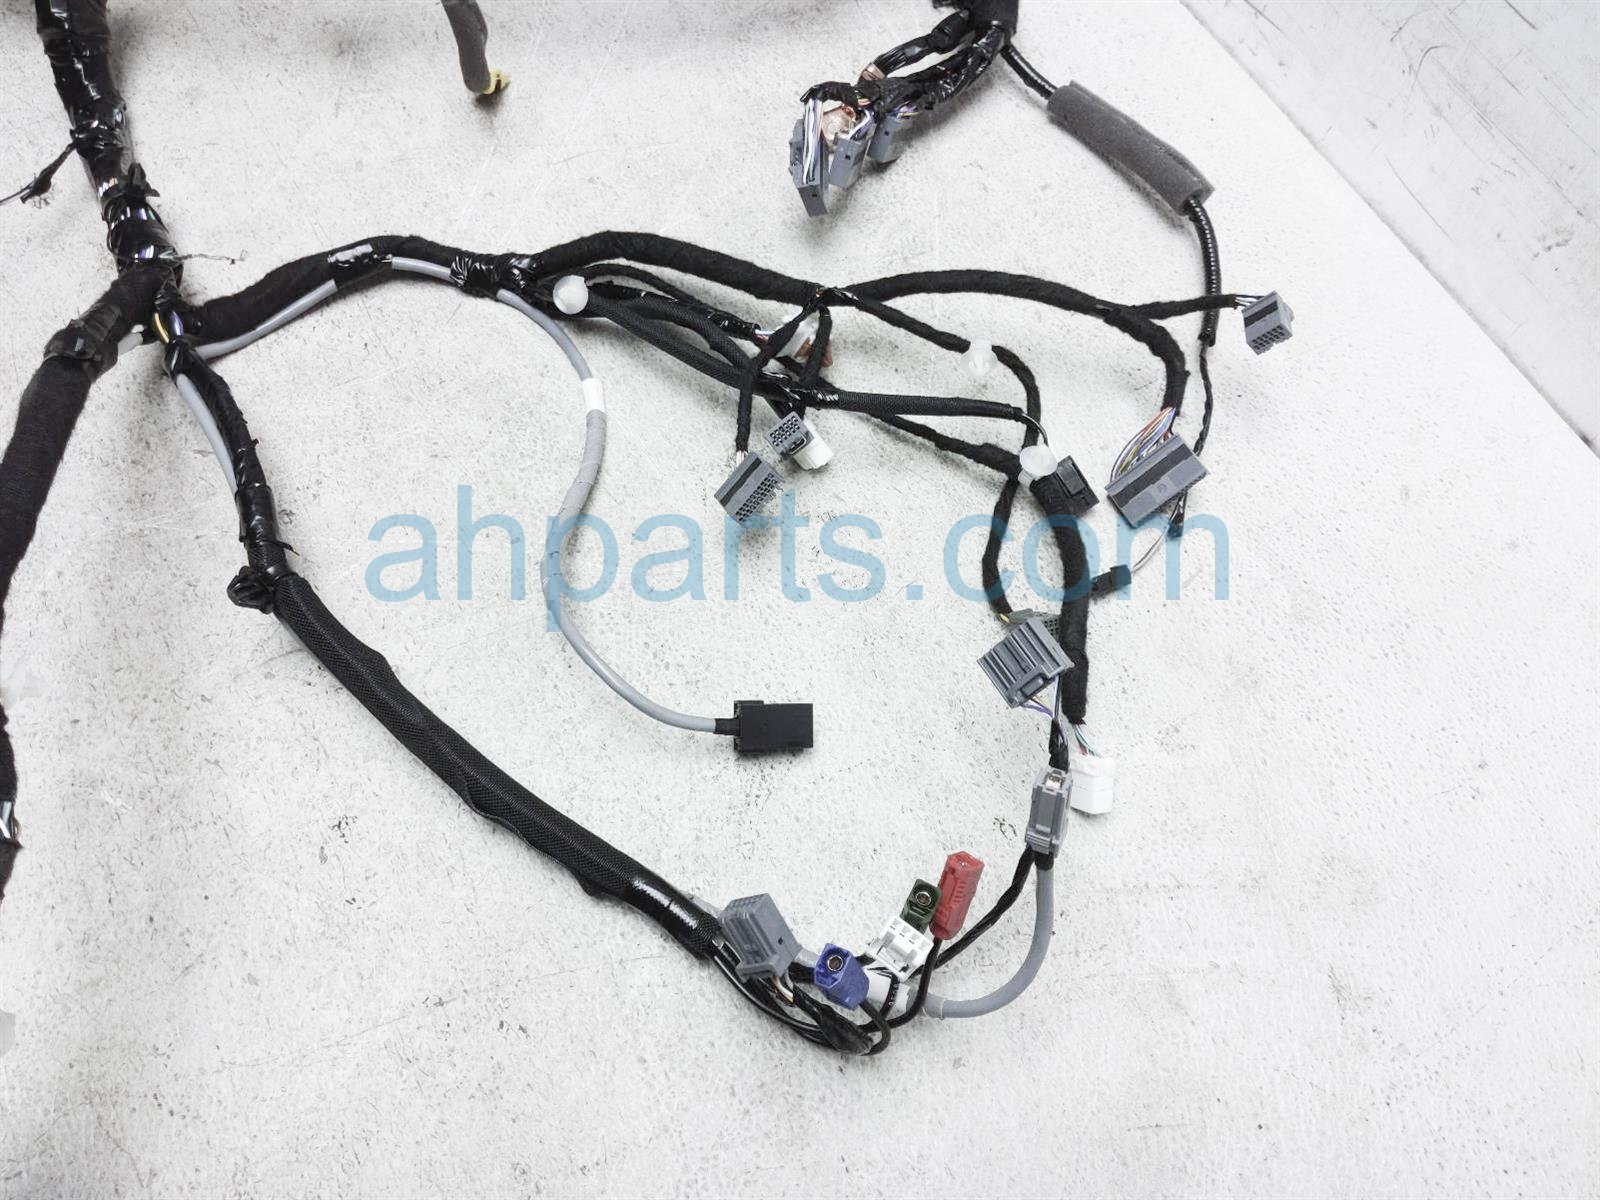 2019 Honda Passport Instrument Wire Harness 32117 TGS A10 Replacement